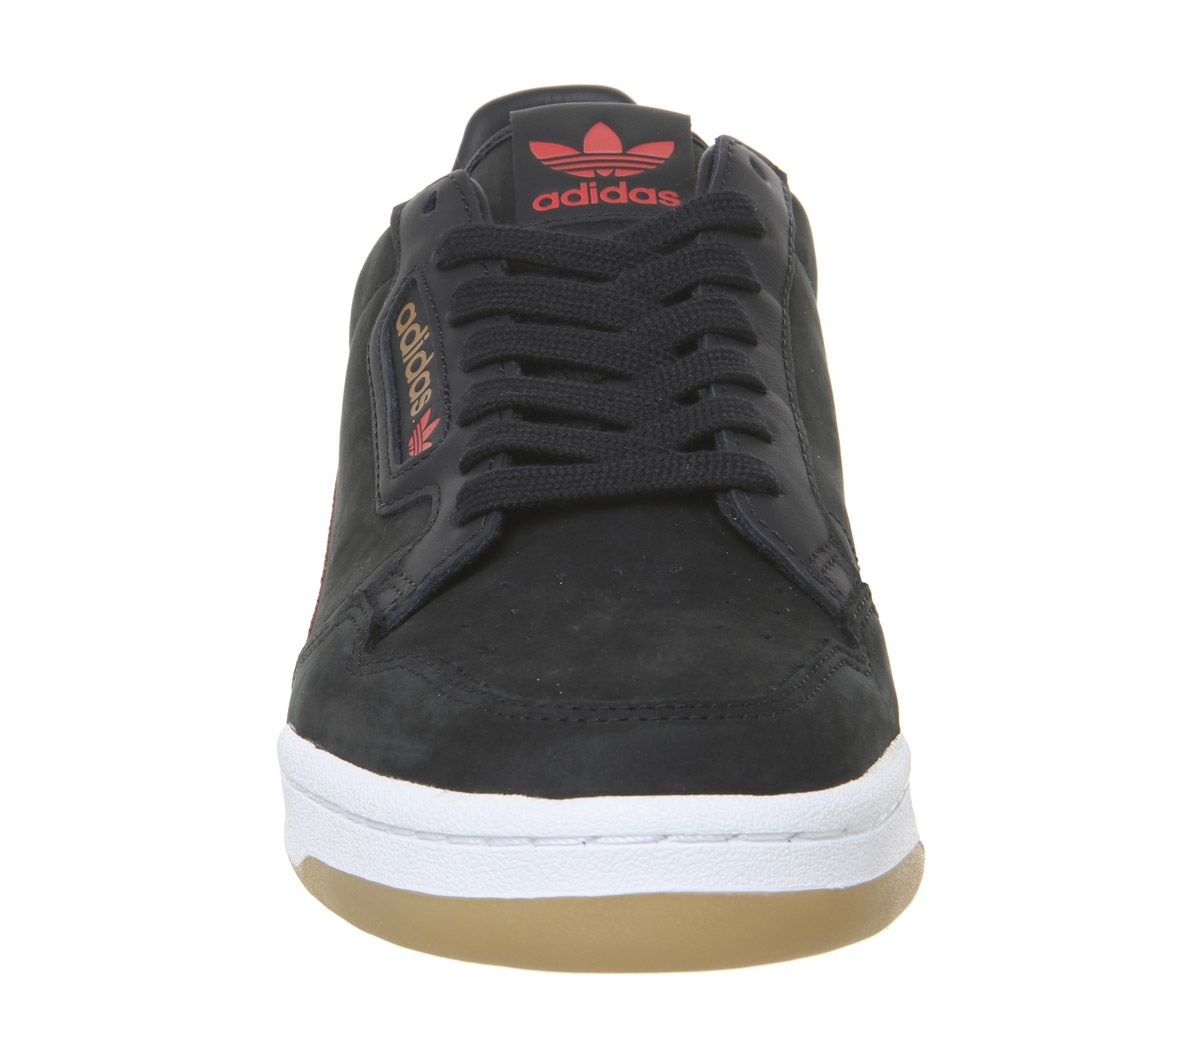 Details about Adidas Continental 80S Trainers Core Black Red Grey Gum Tfl  Trainers Shoes